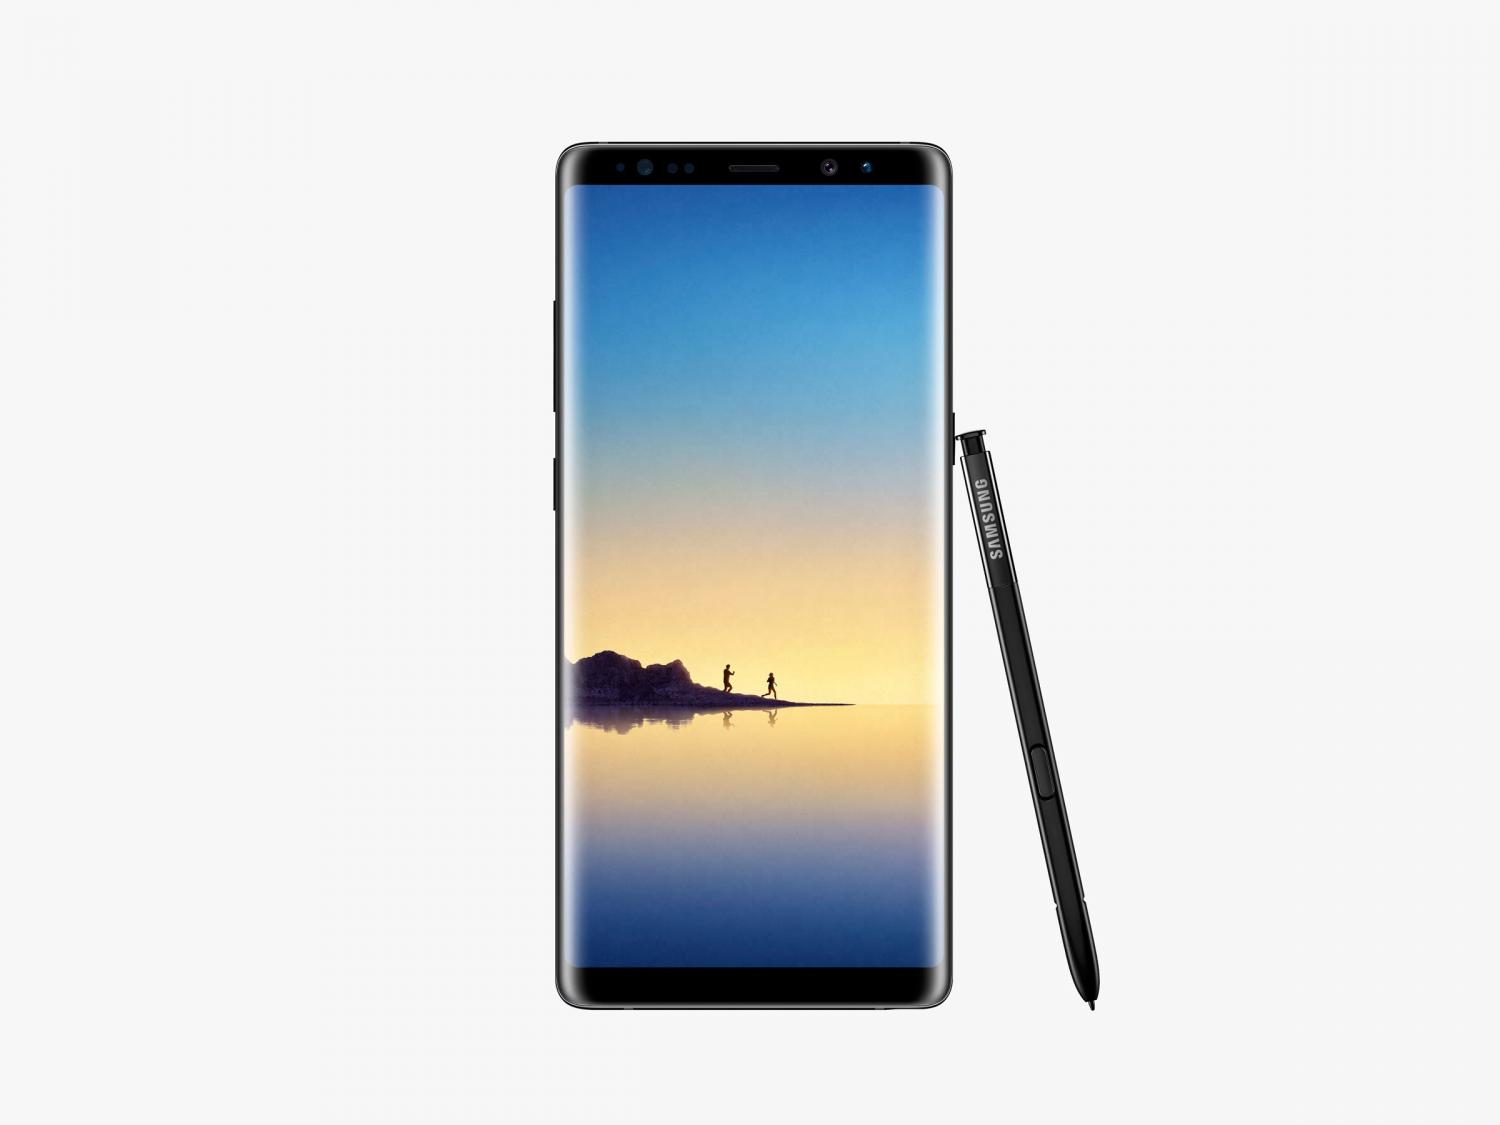 Samsung Galaxy Note 8 price accidentally revealed ahead of launch